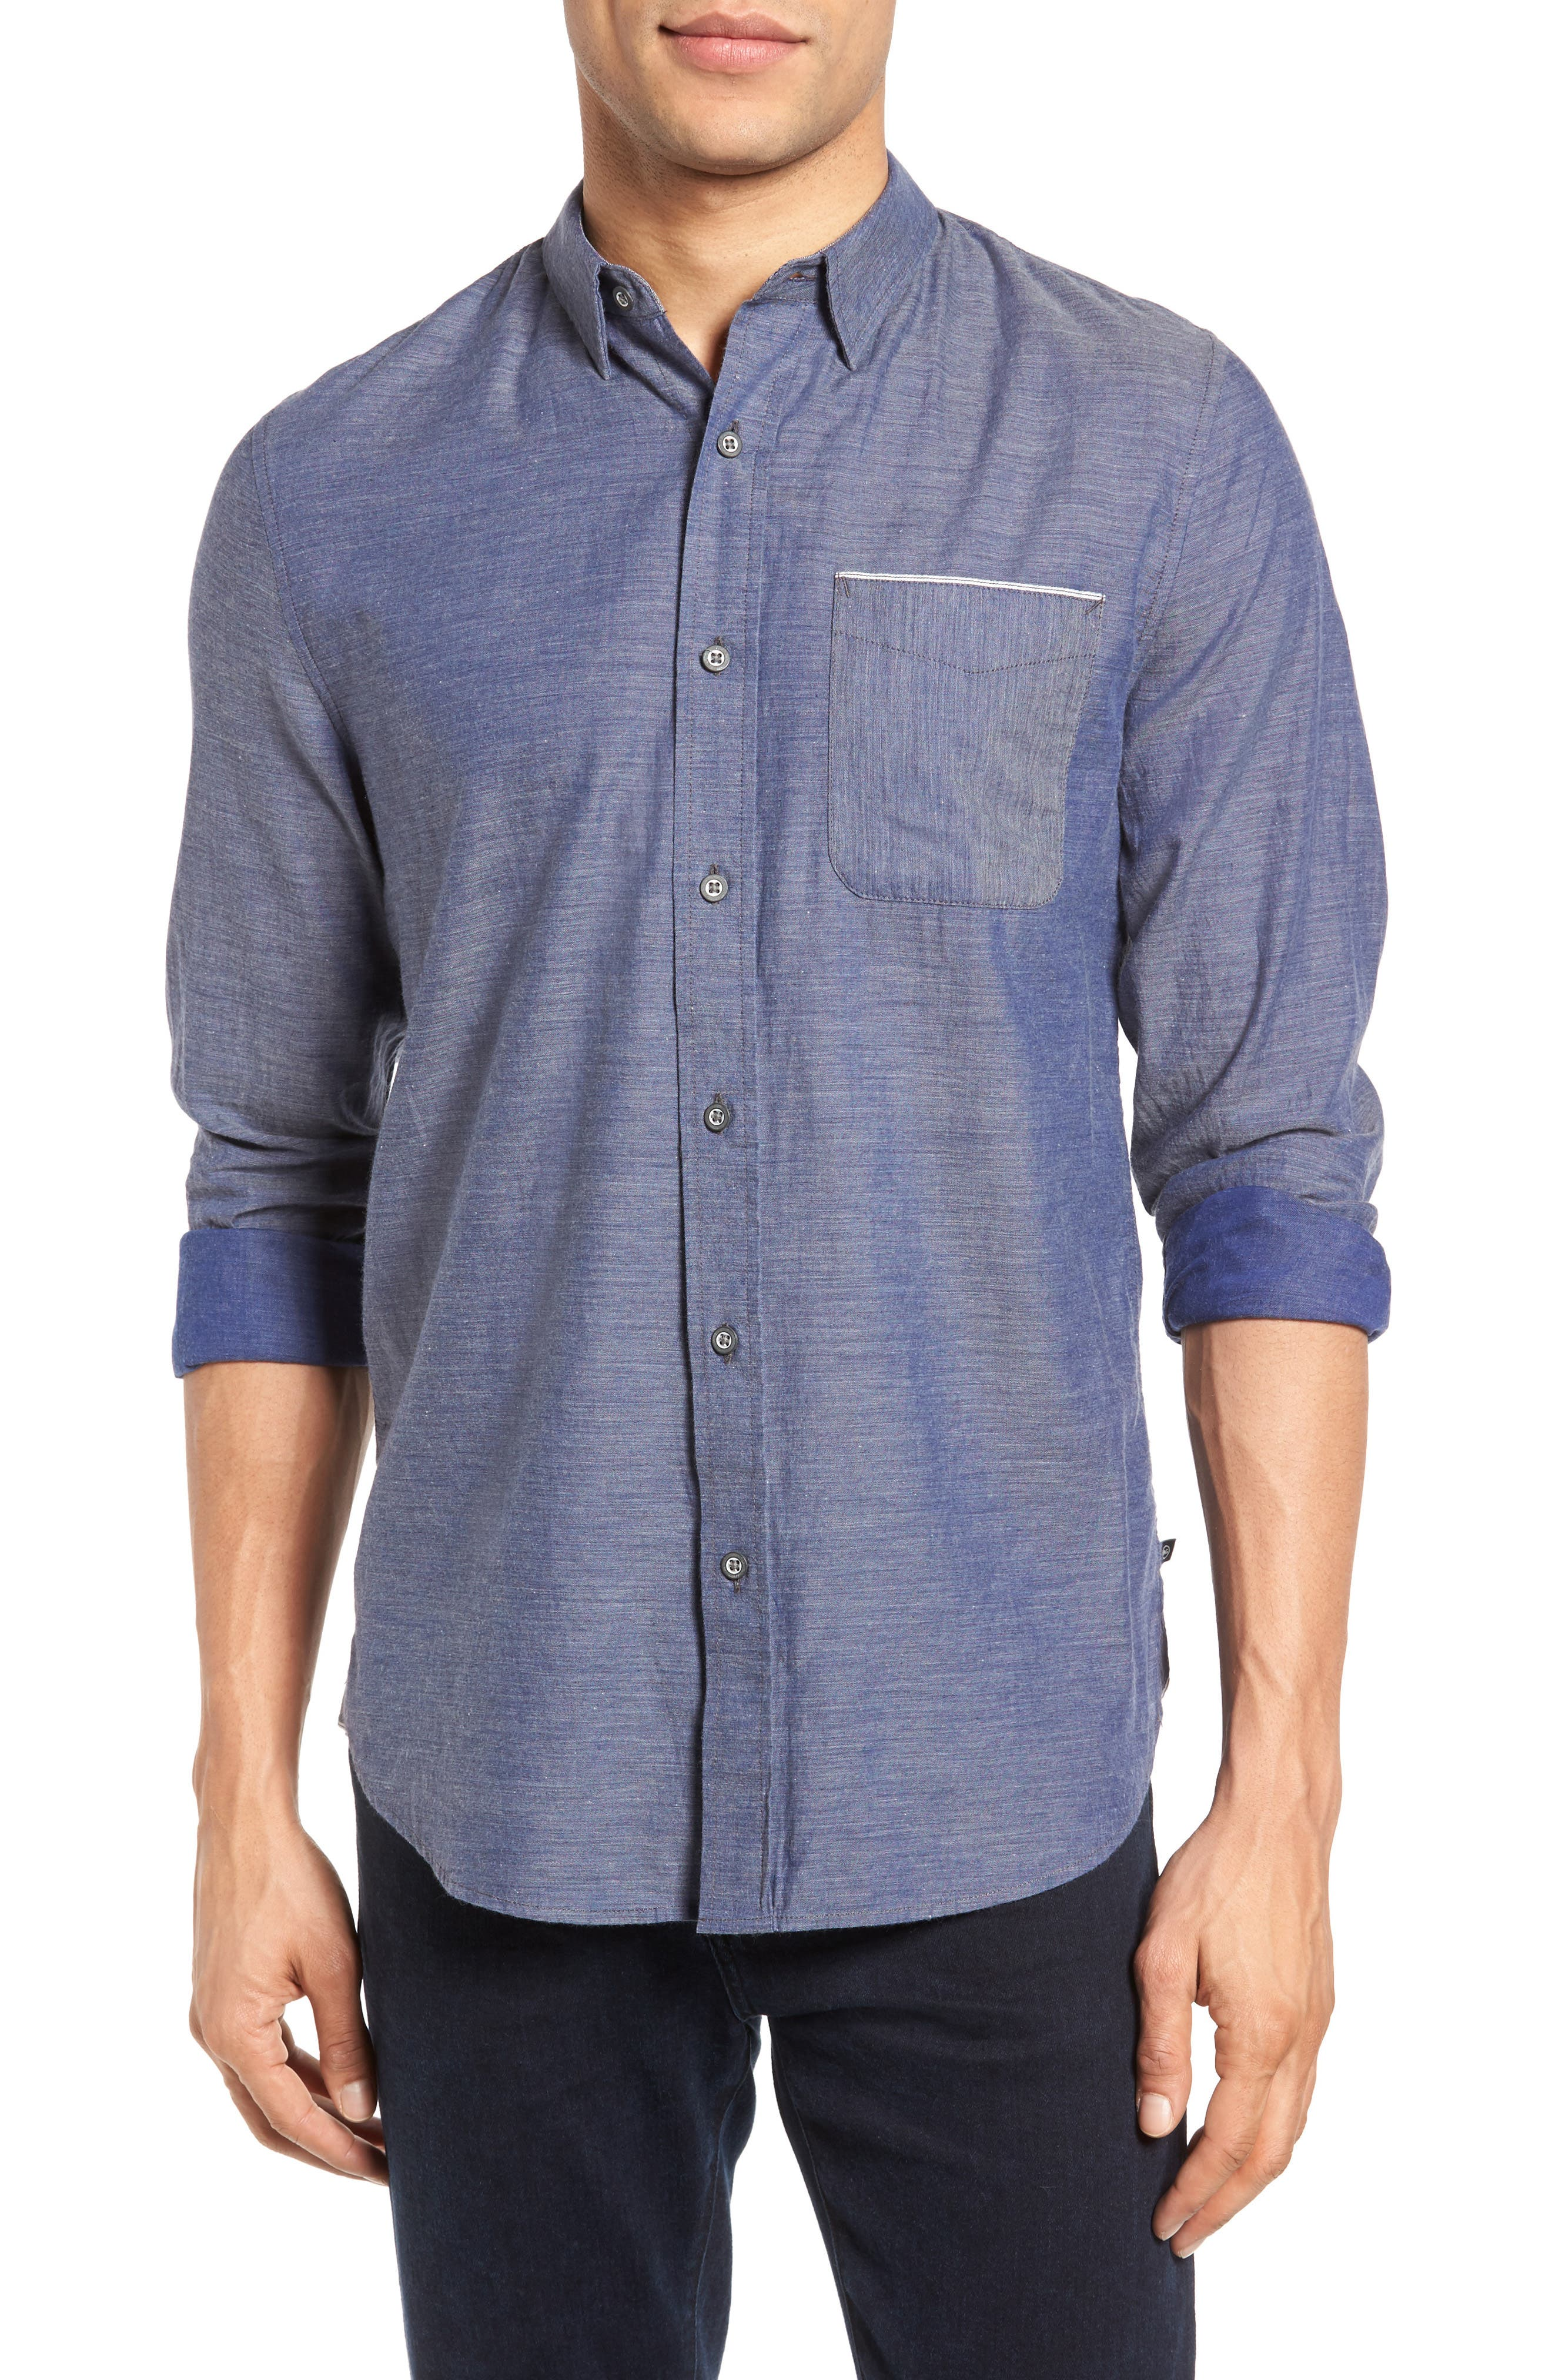 Alternate Image 1 Selected - AG Colton Trim Fit Sport Shirt